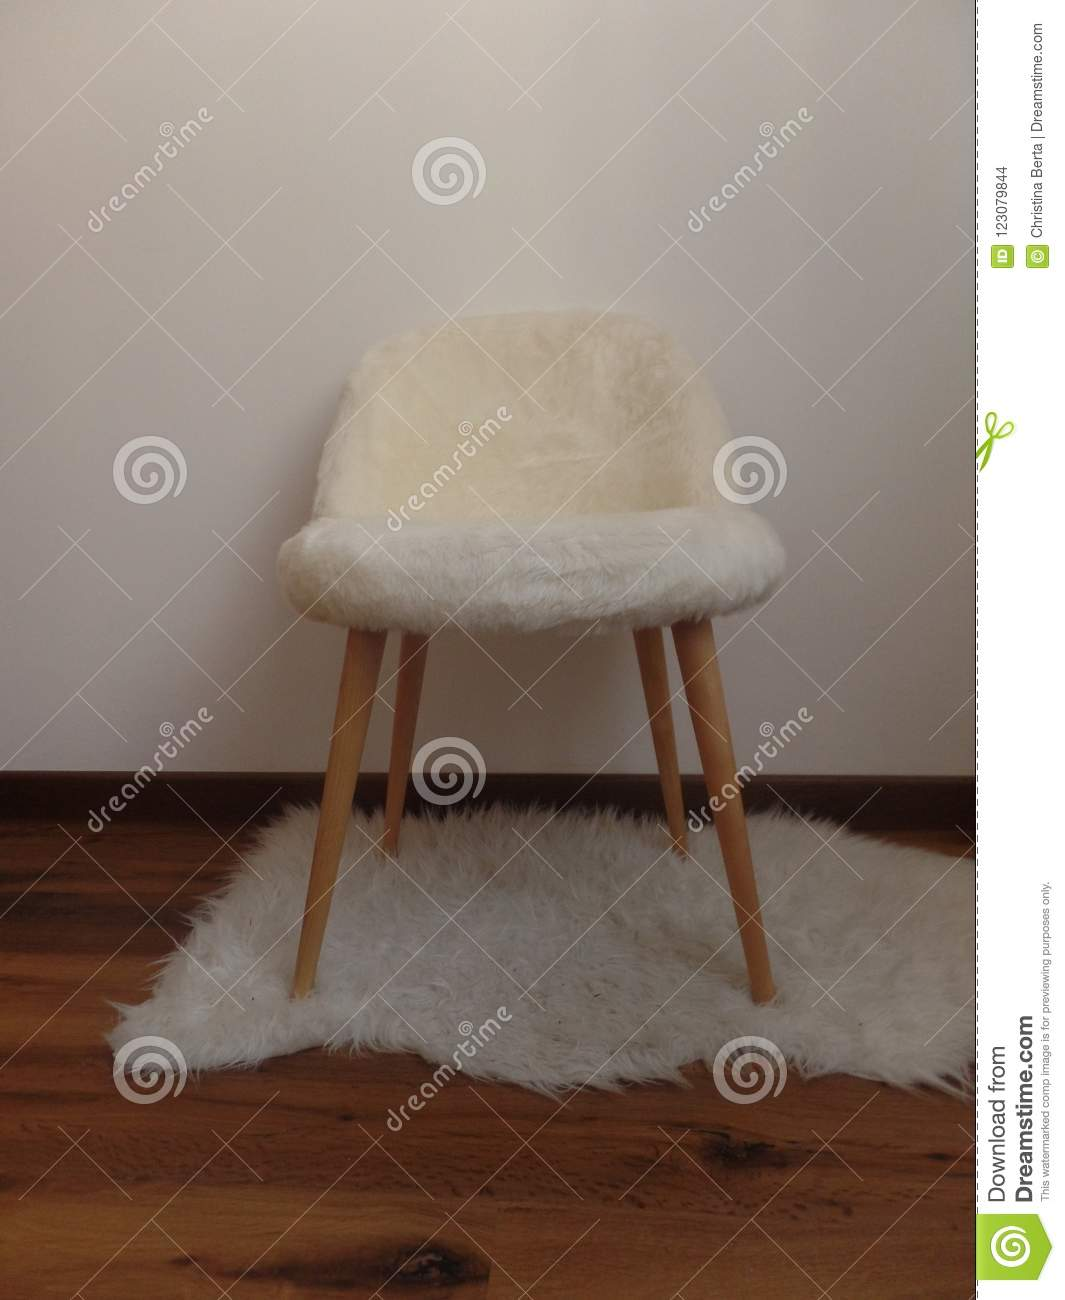 Phenomenal White Faux Fur Chair On A White Rug Stock Photo Image Of Cjindustries Chair Design For Home Cjindustriesco